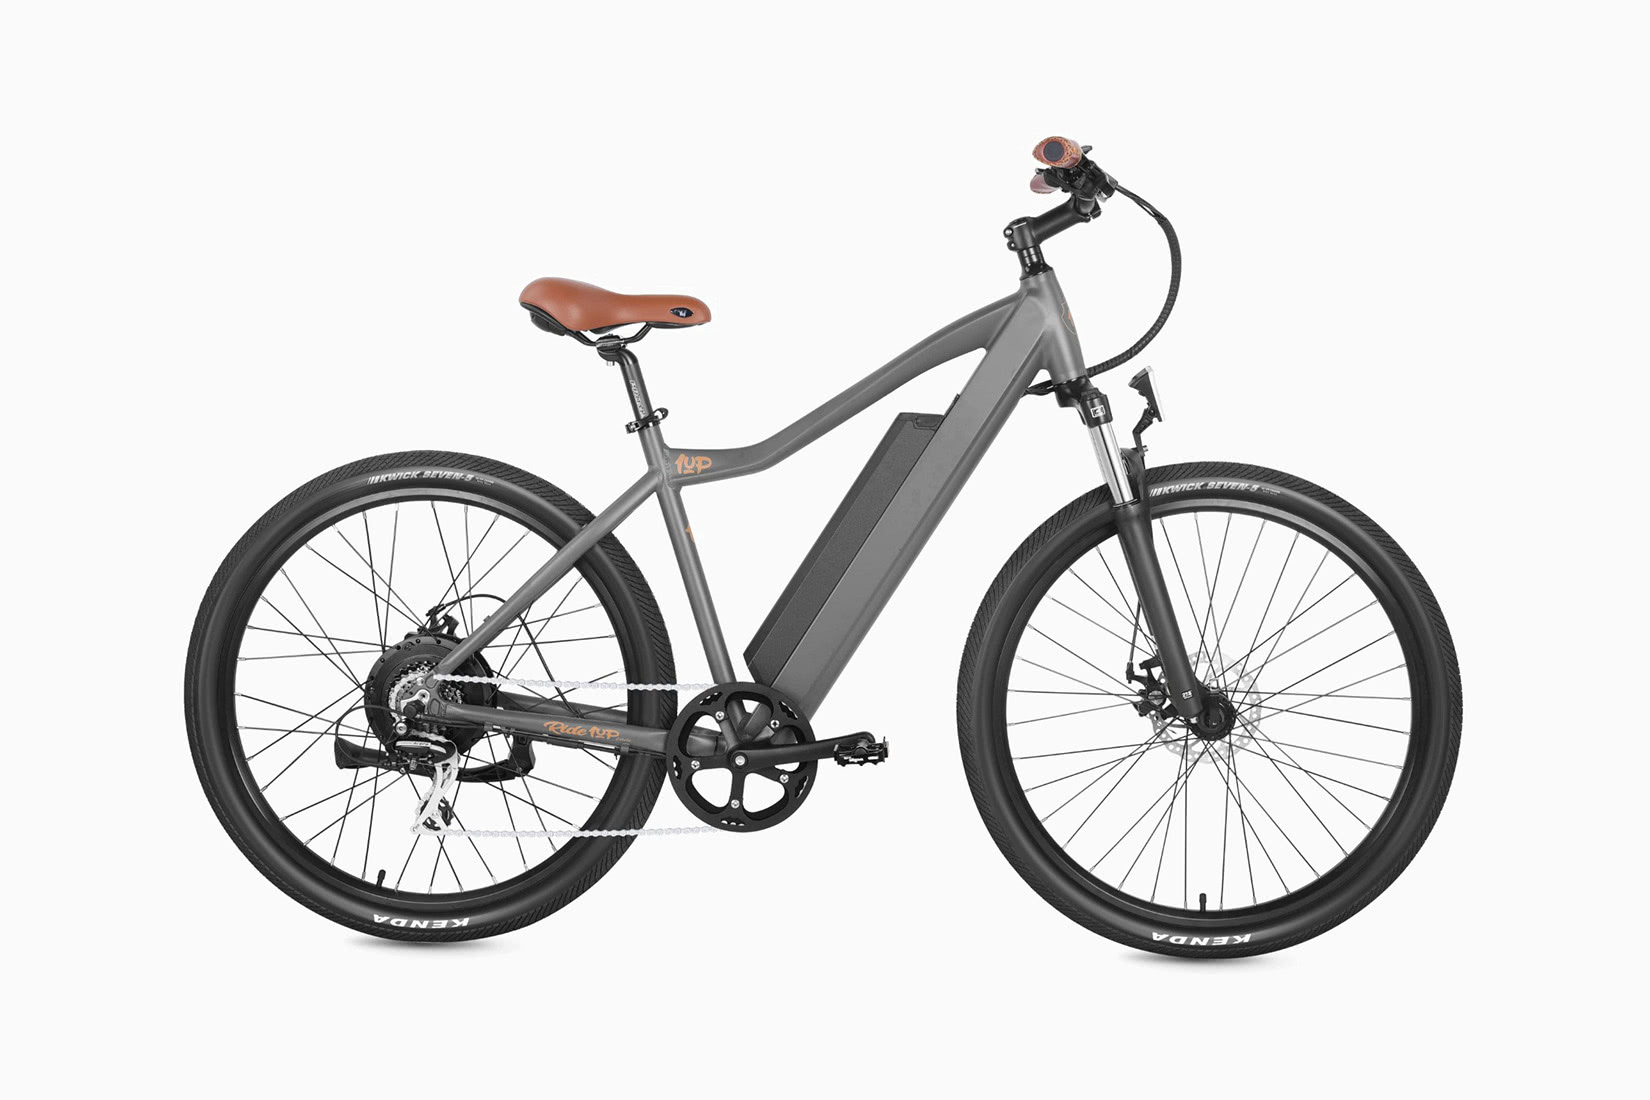 ride1up 500 series review electric commuter bike luxe digital